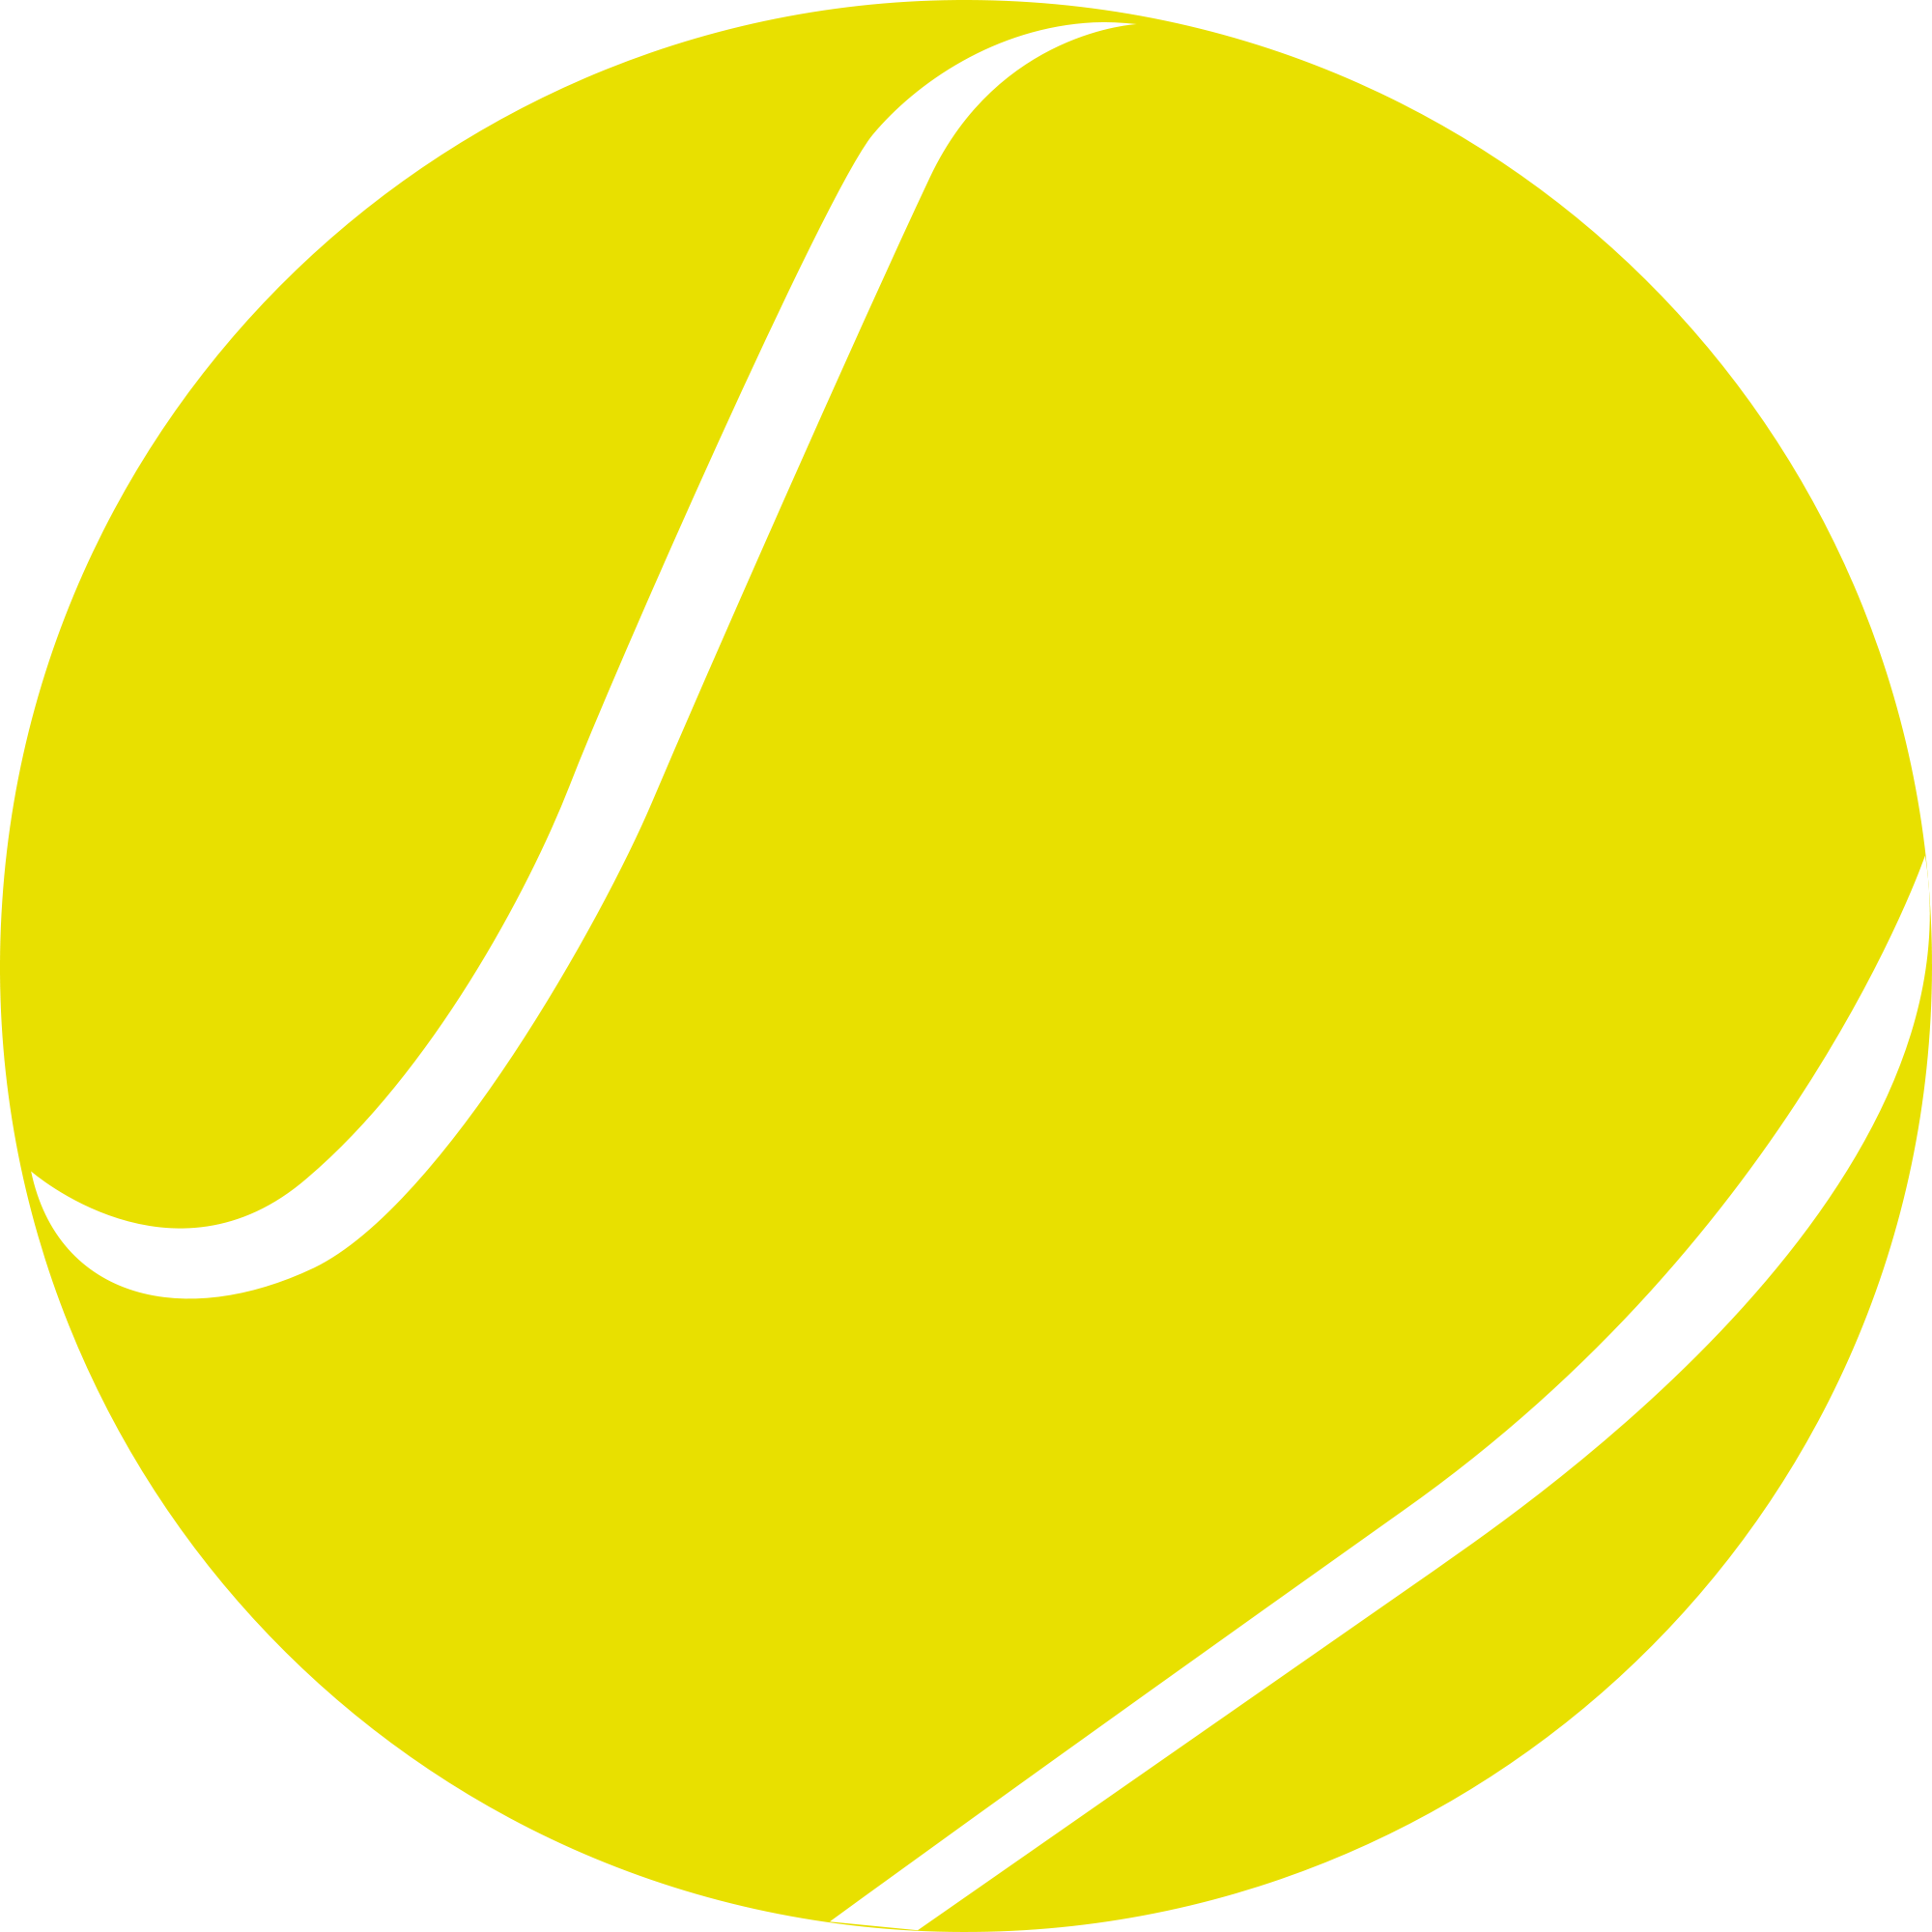 2000x2000 Tennis Ball Clipart Transparent